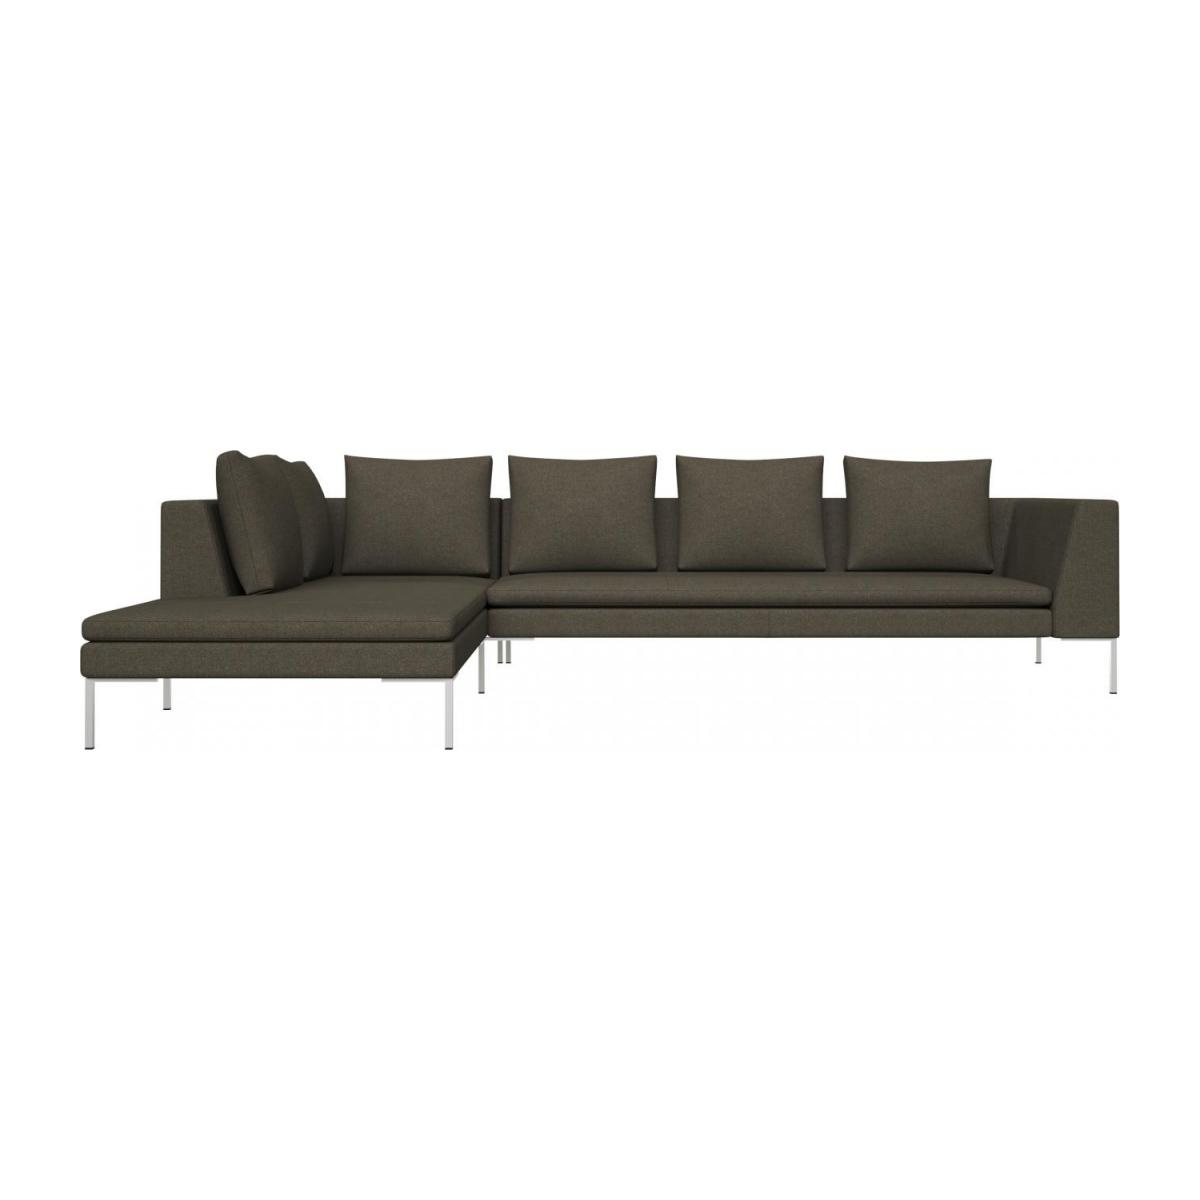 3 seater sofa with chaise longue on the left in Lecce fabric, slade grey  n°2